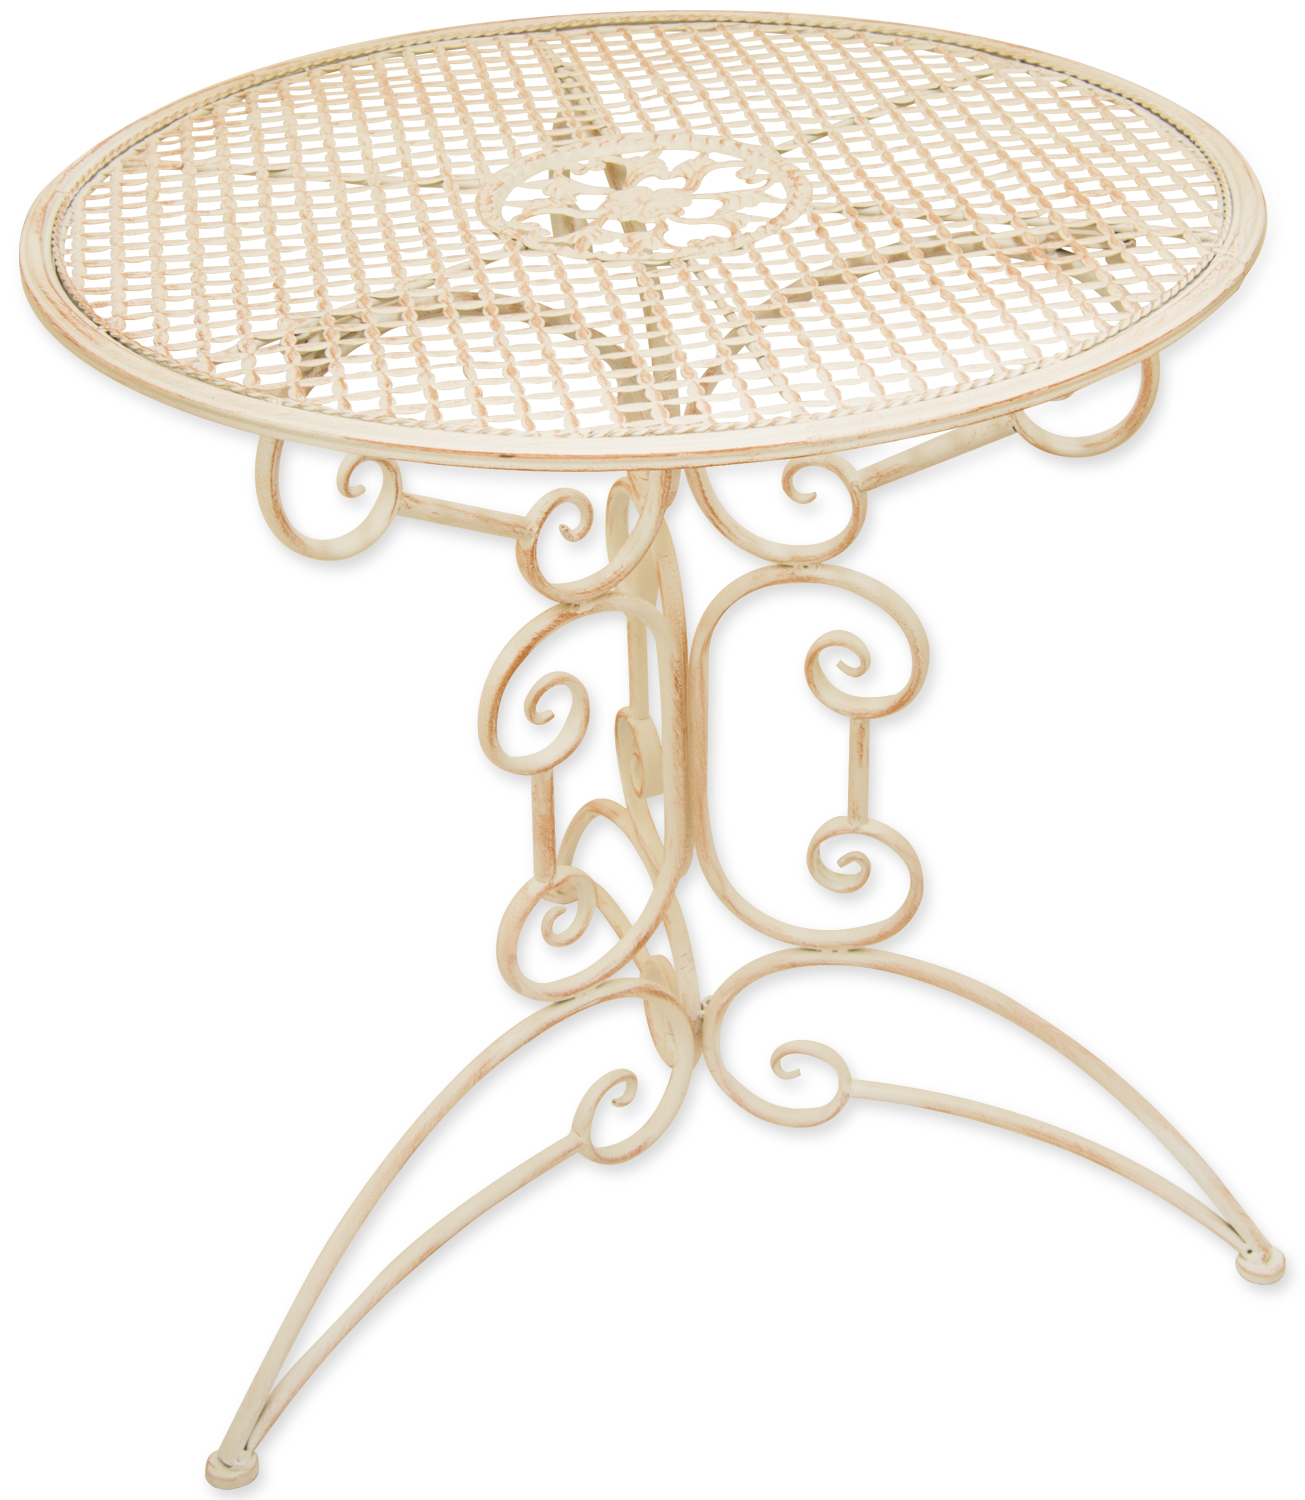 Details About Woodside Small Round Outdoor Metal Coffee Table Garden Furniture